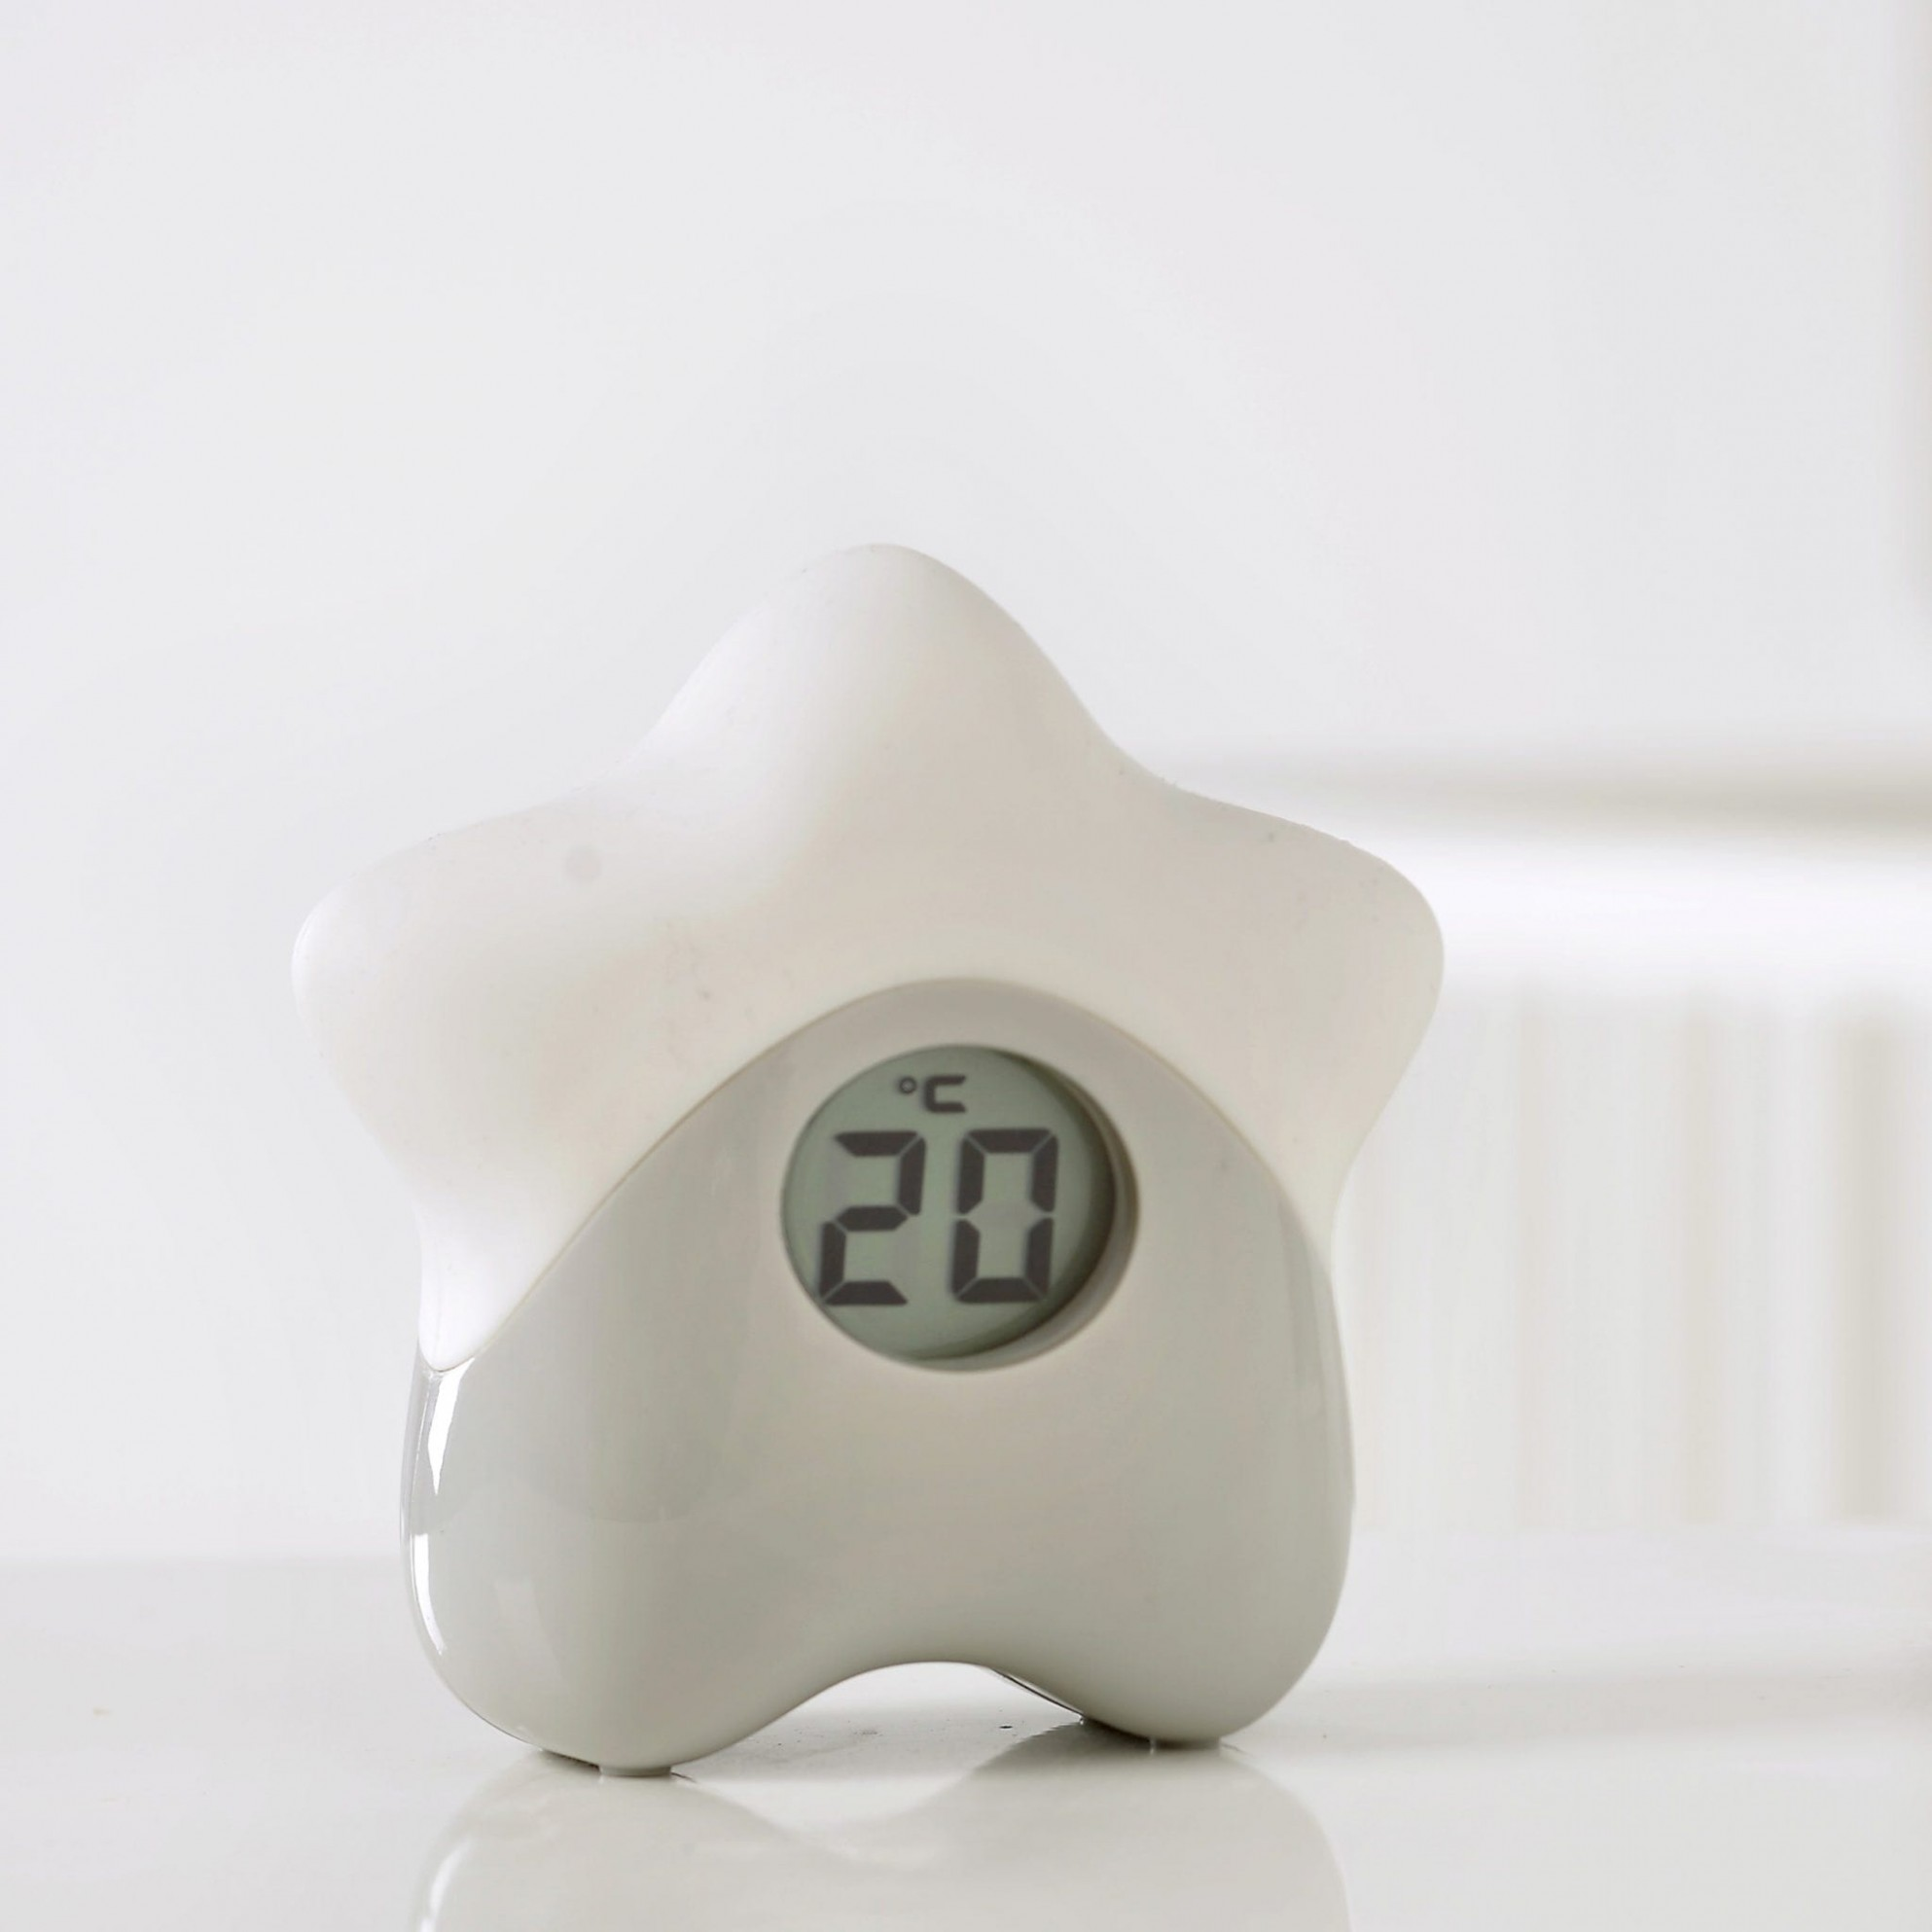 Purflo Starlight Baby Room Thermometer - Baby Room Thermometer